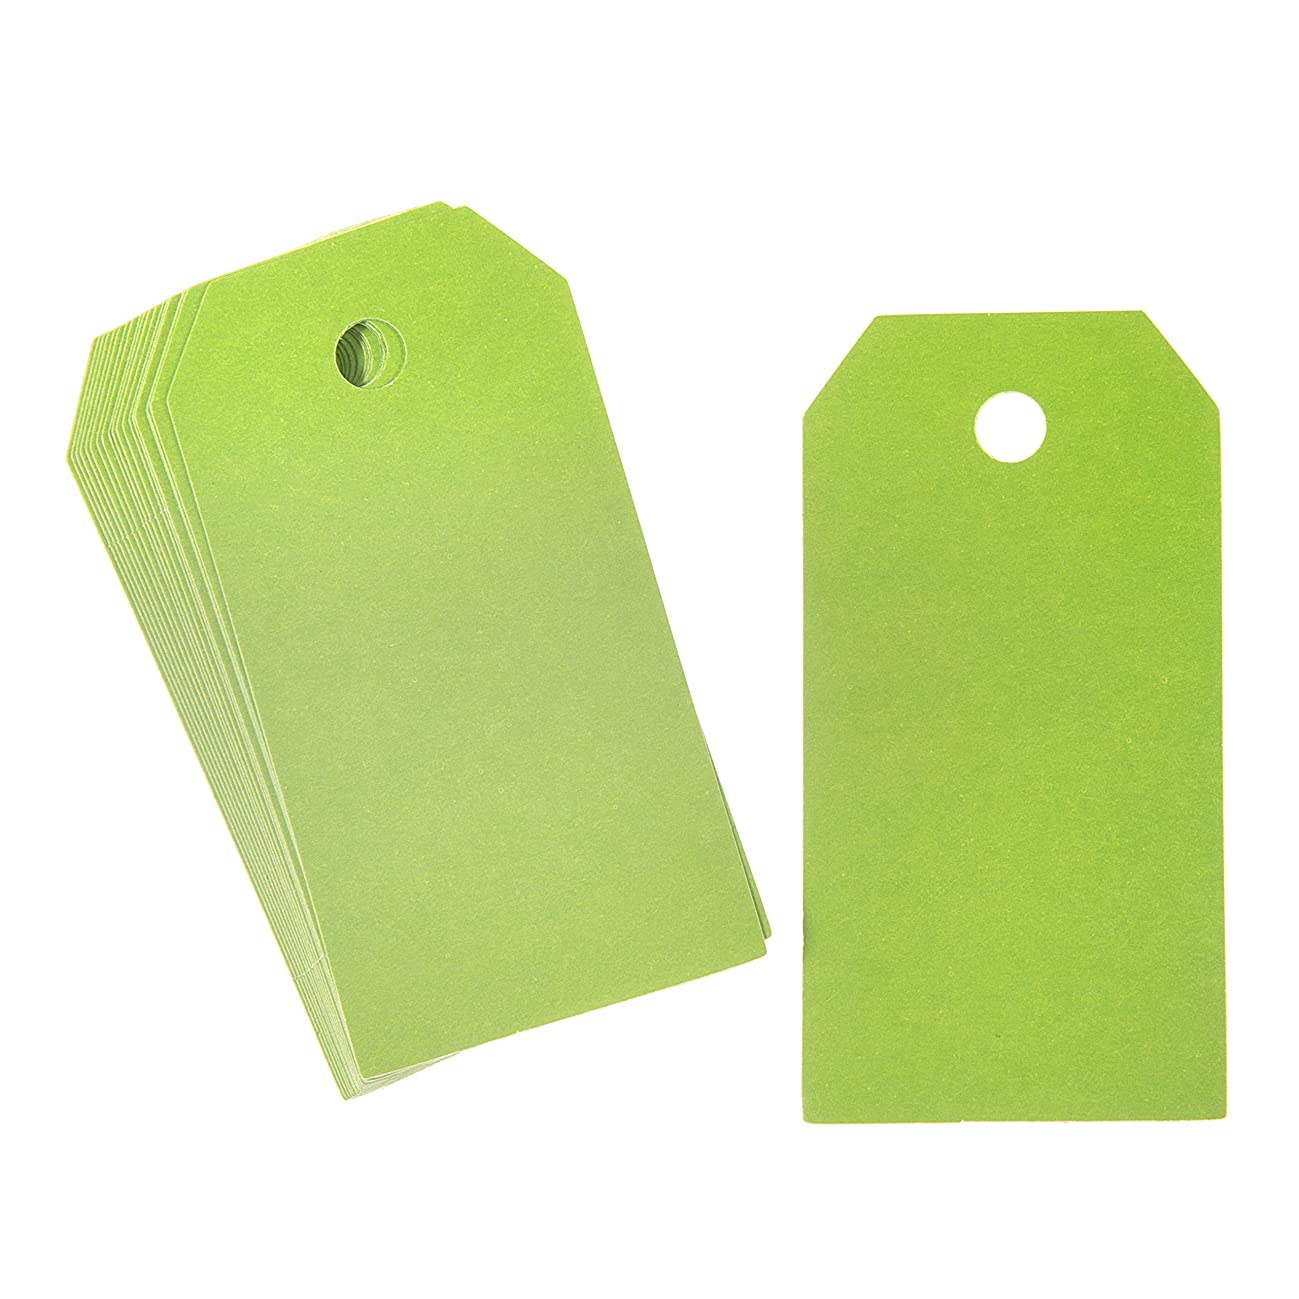 Darice Green Solid Paper Tags 100 Piece